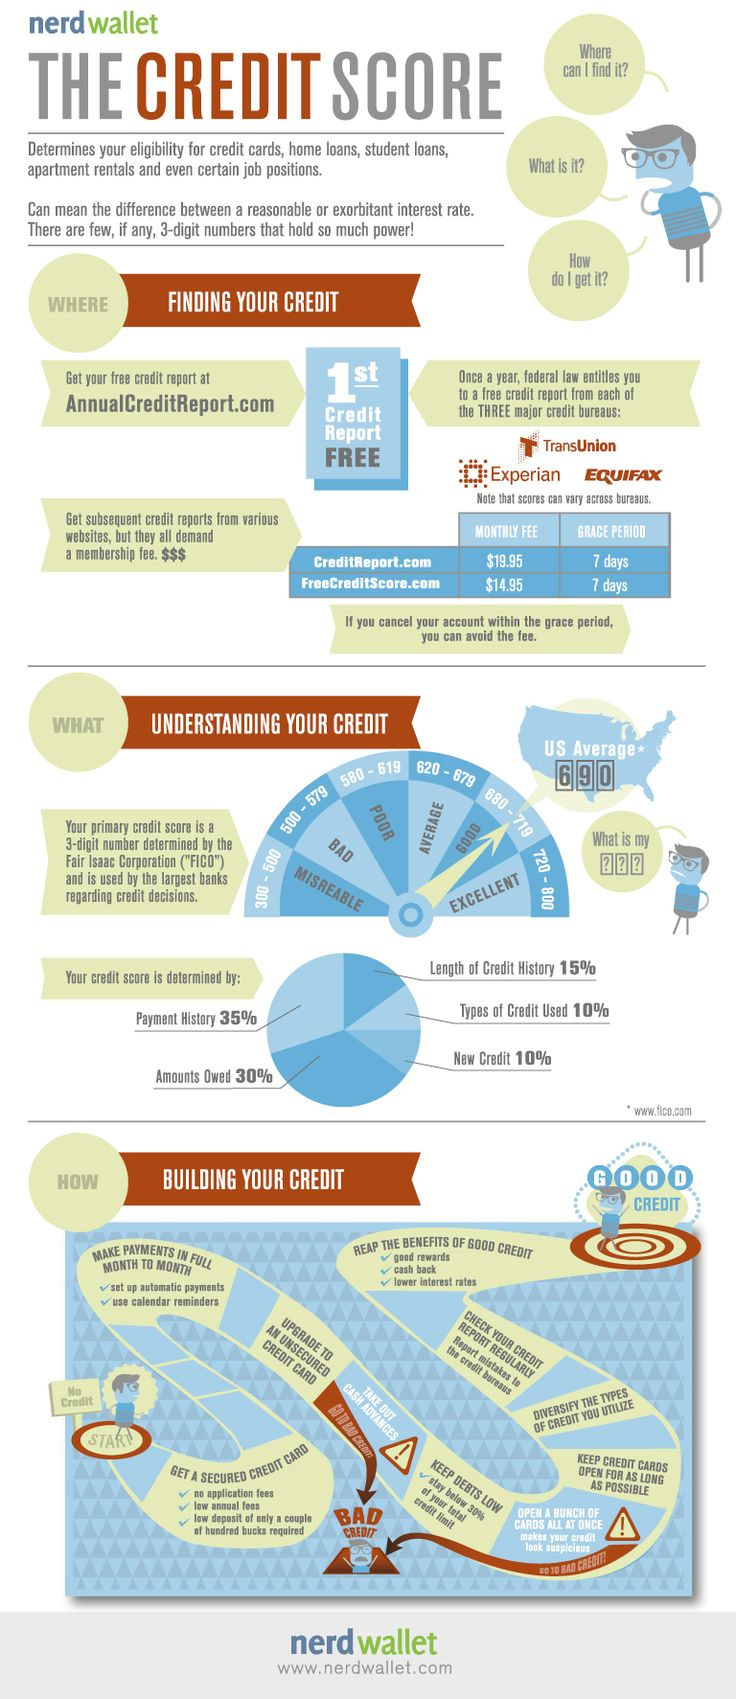 Perfect your credit score so you can qualify to buy a home and get the best interest rate.